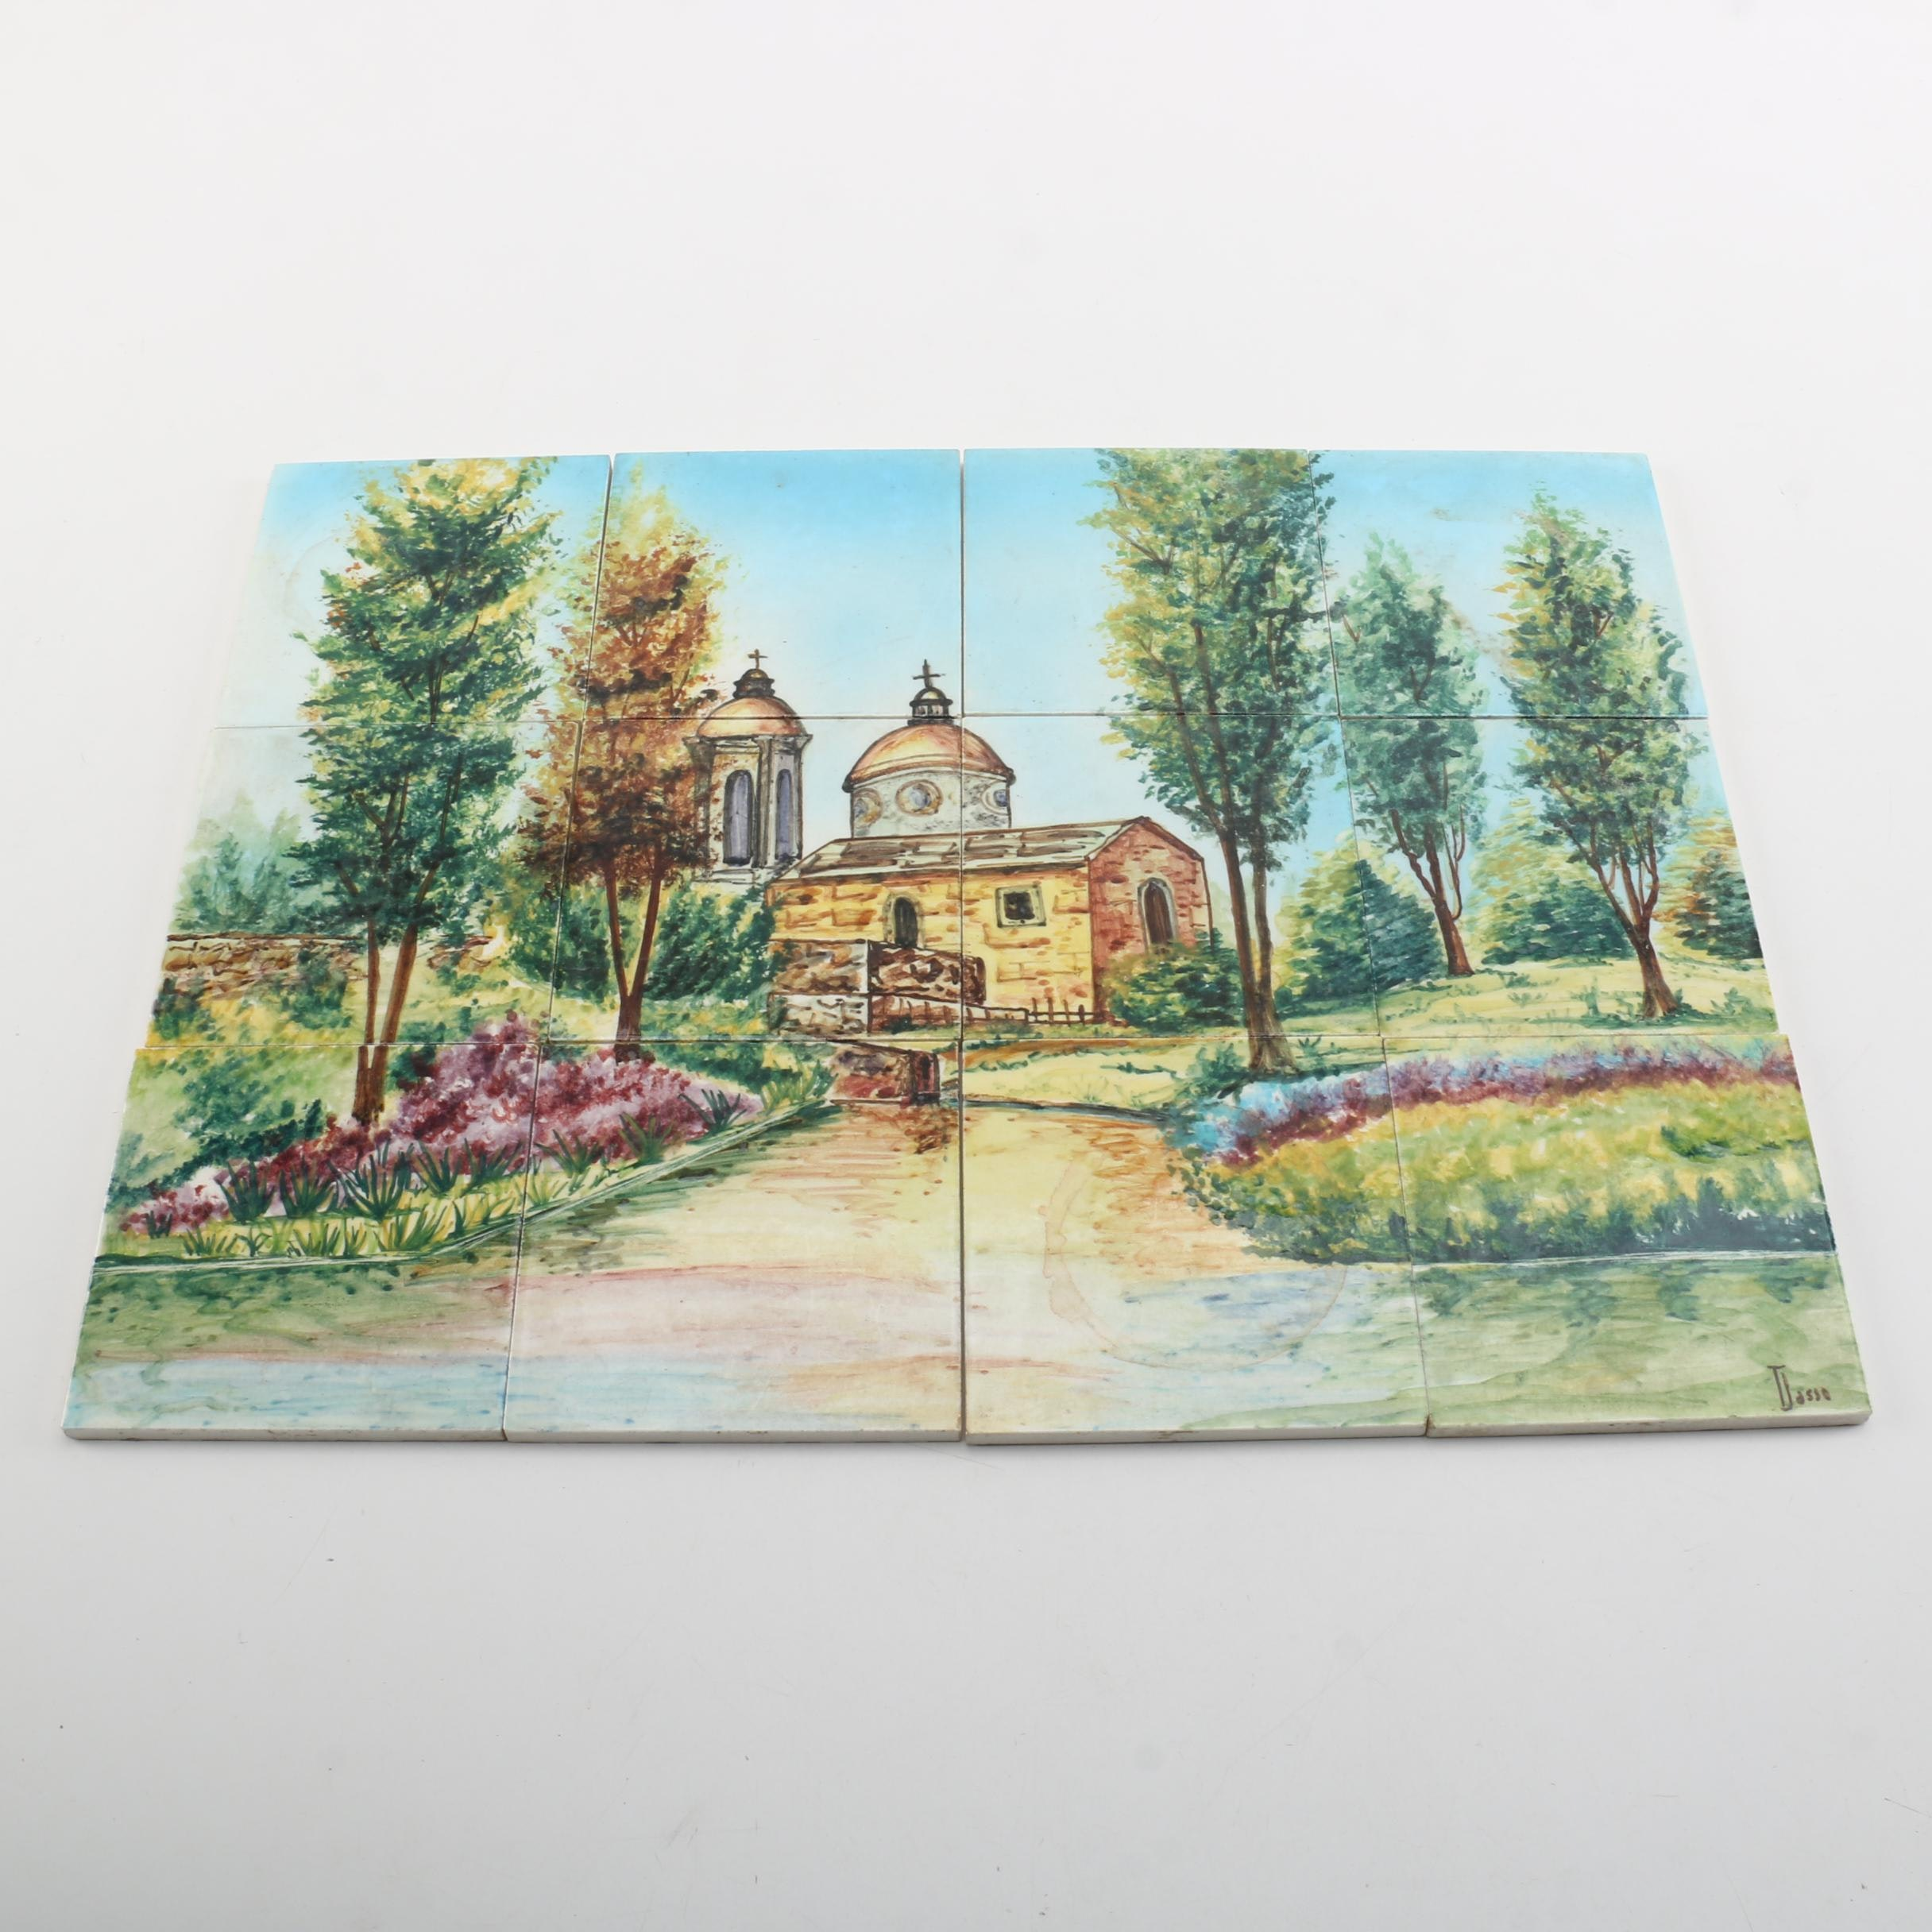 Hand-Painted Mexican Ceramic Pictorial Tiles